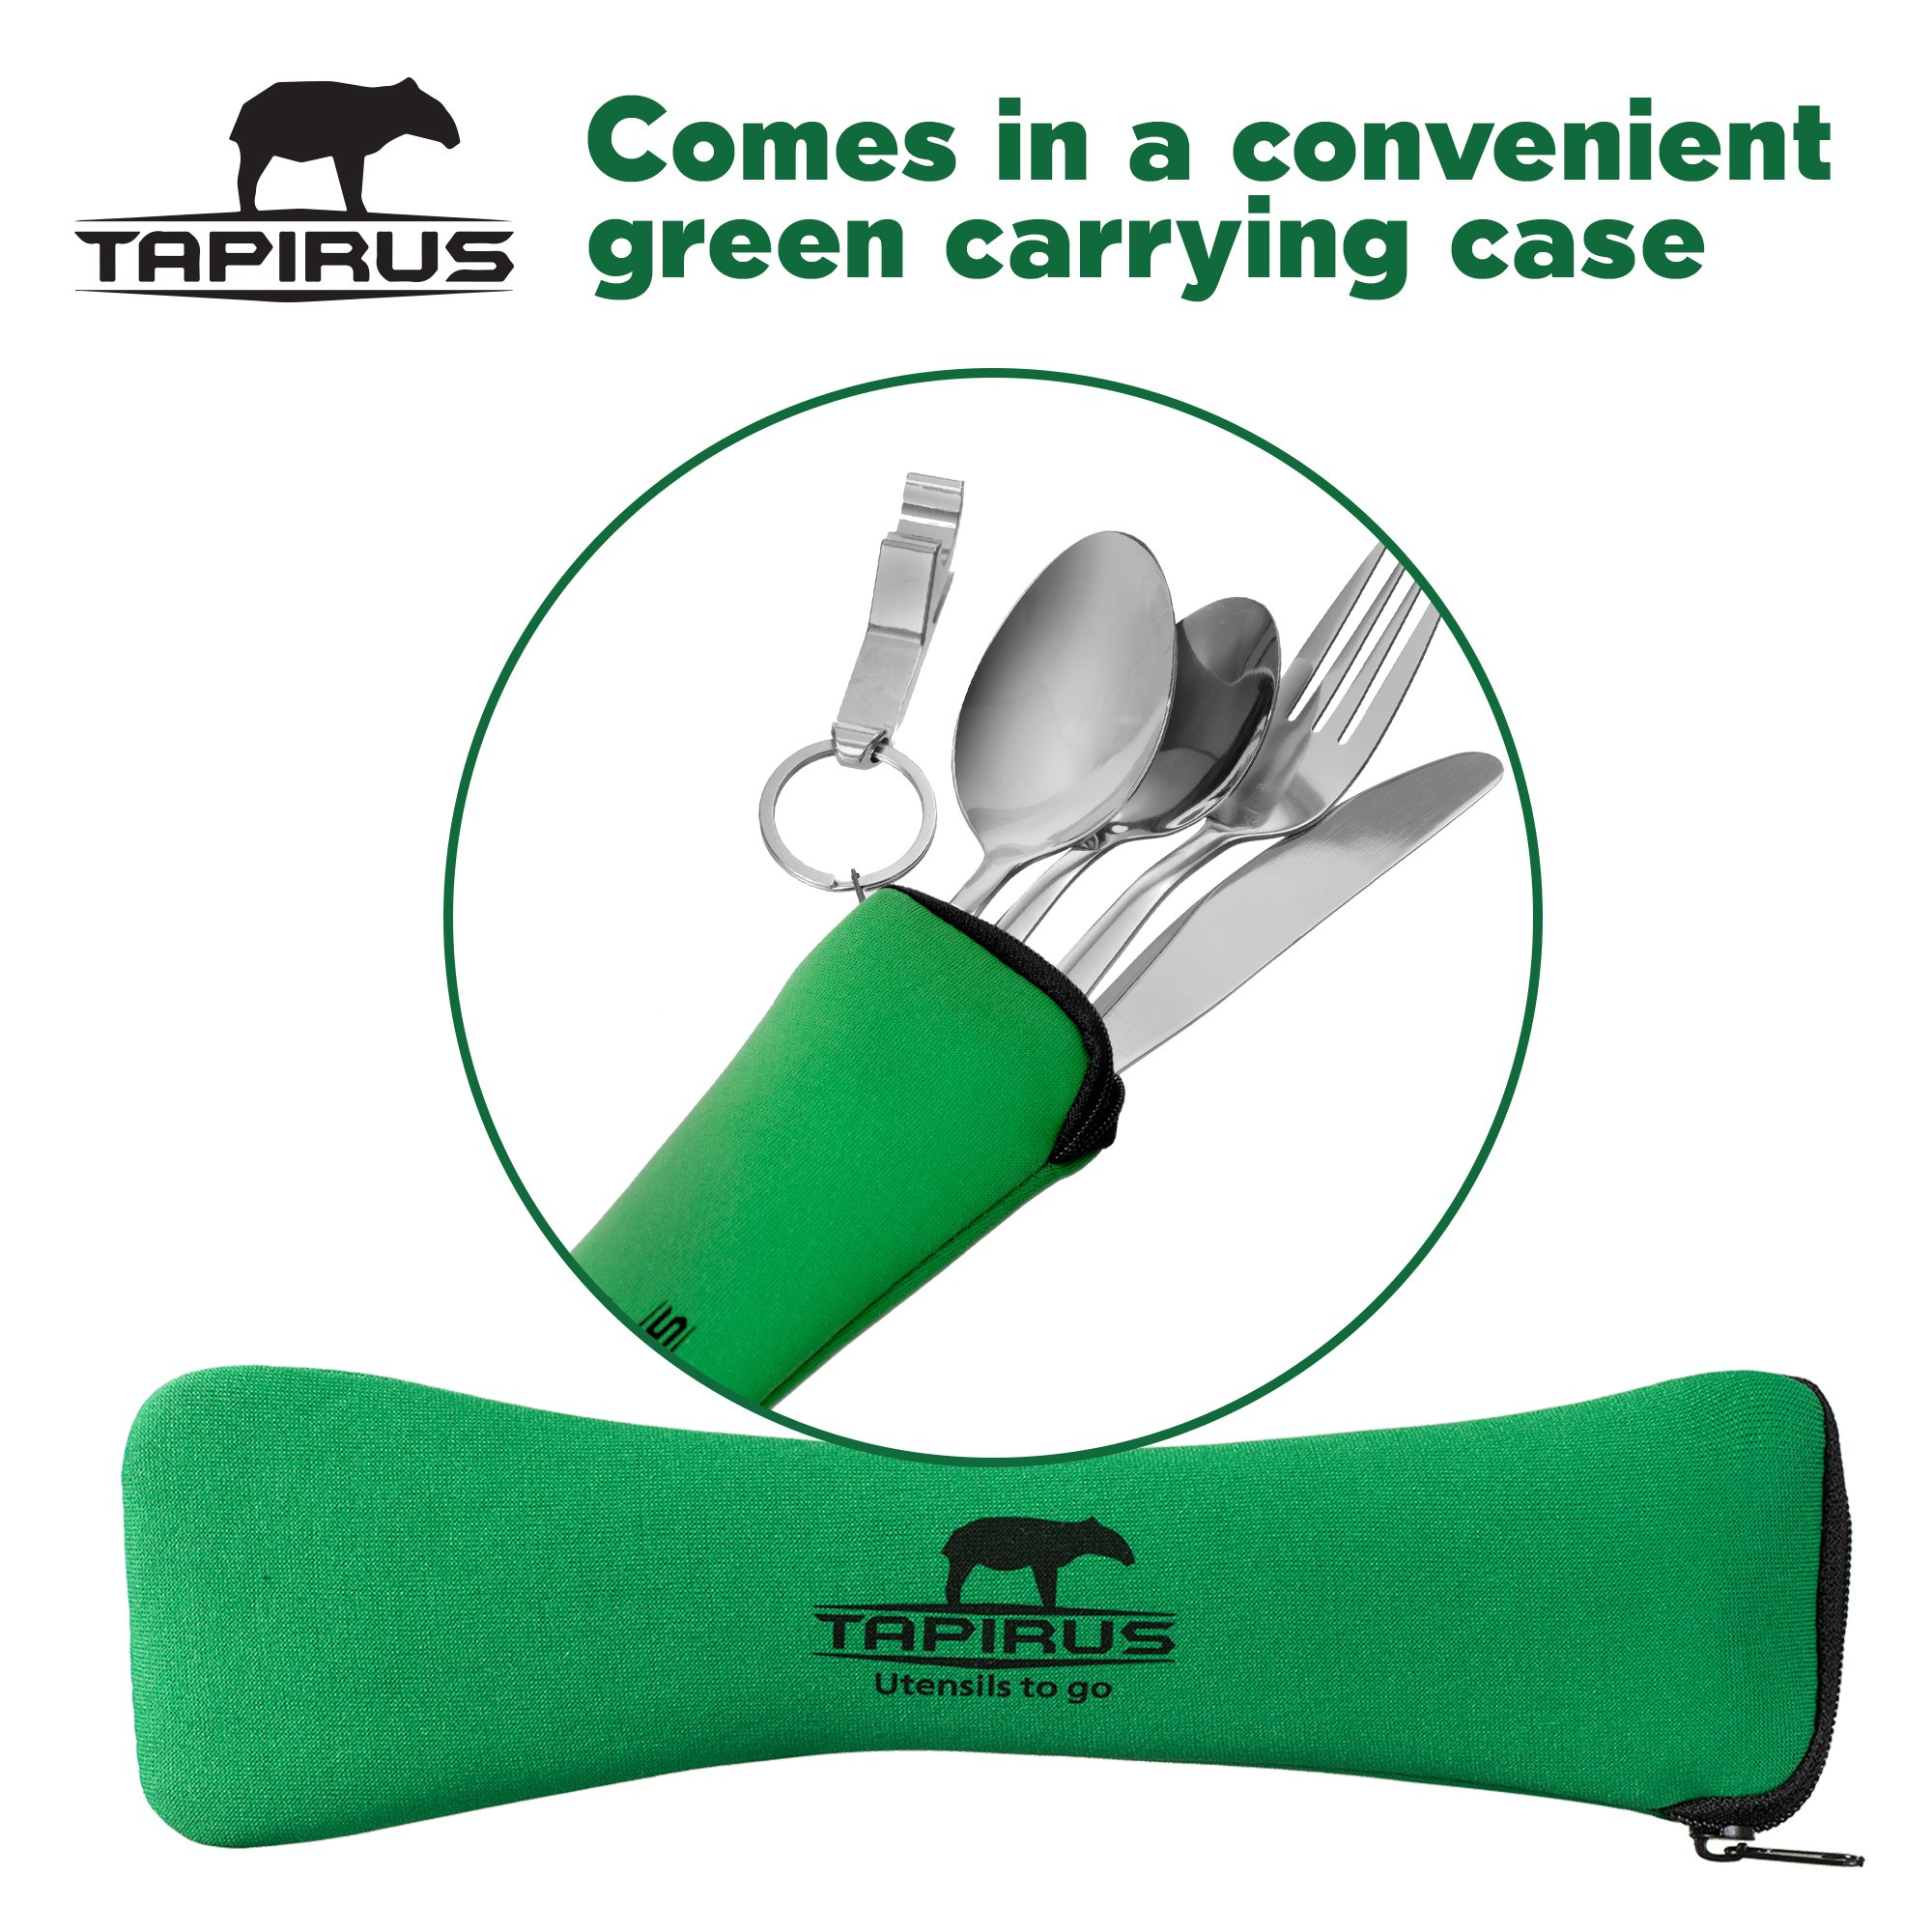 Tapirus Camping Eating Utensils To Go   Durable Stainless Steel Lightweight Construction Flatware   Travel Mess Cutlery Kit With Spoon, Teaspoon, Knife, Fork & Bottle Opener   Comes In A Carrying Case by Tapirus (Image #6)